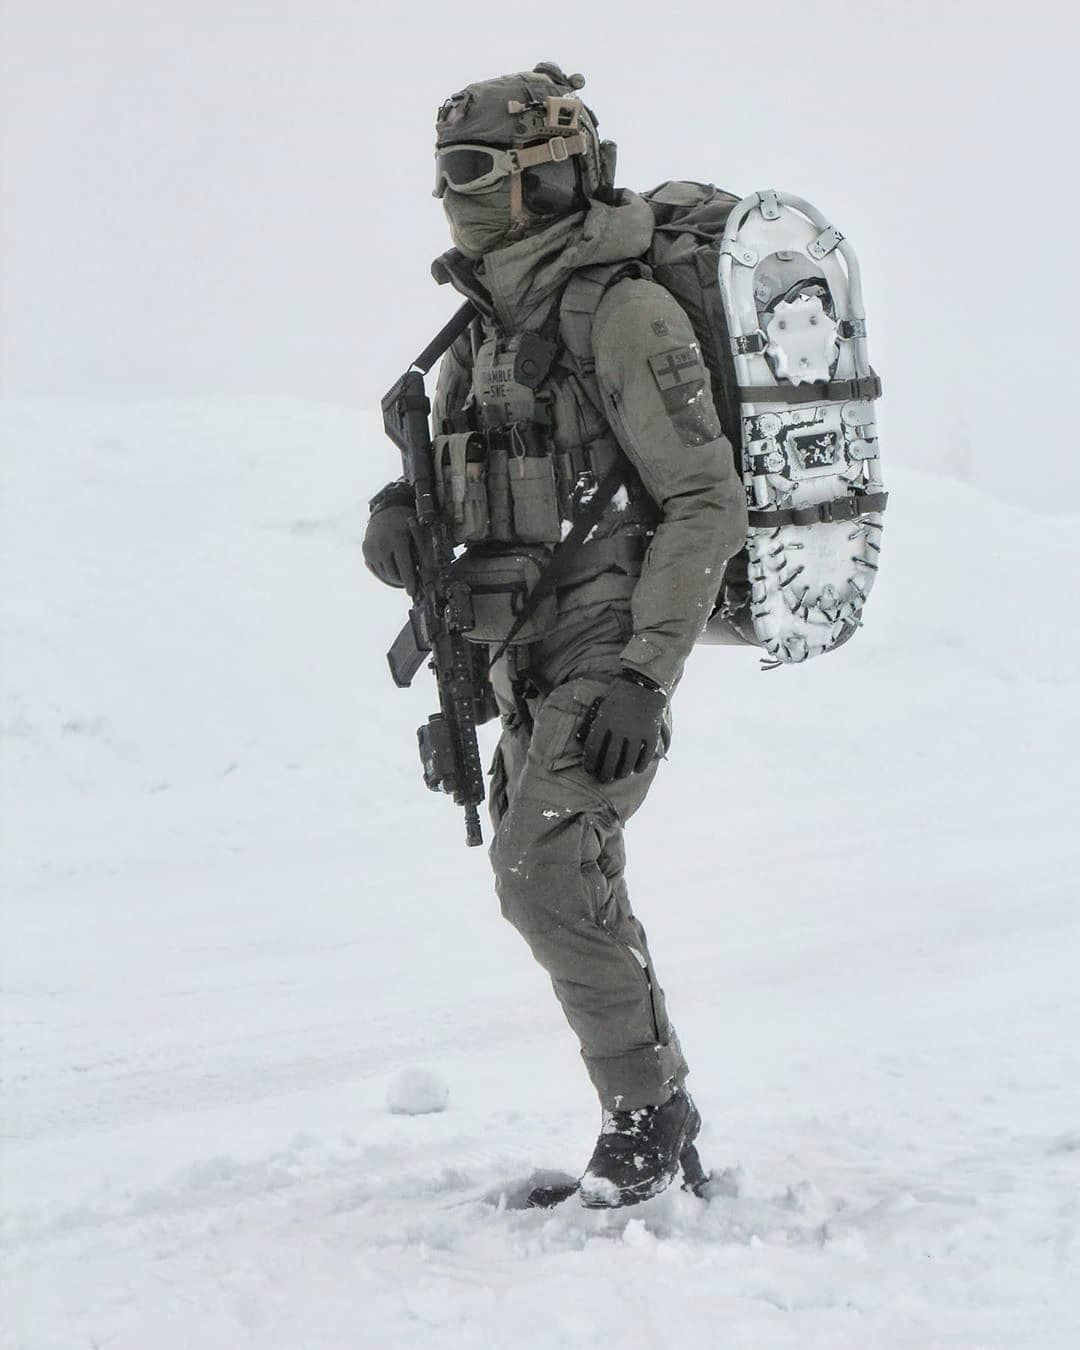 Warrior Assault Systems Lpc In Ranger Green In 2020 Special Forces Gear Military Gear Special Forces Military Guns